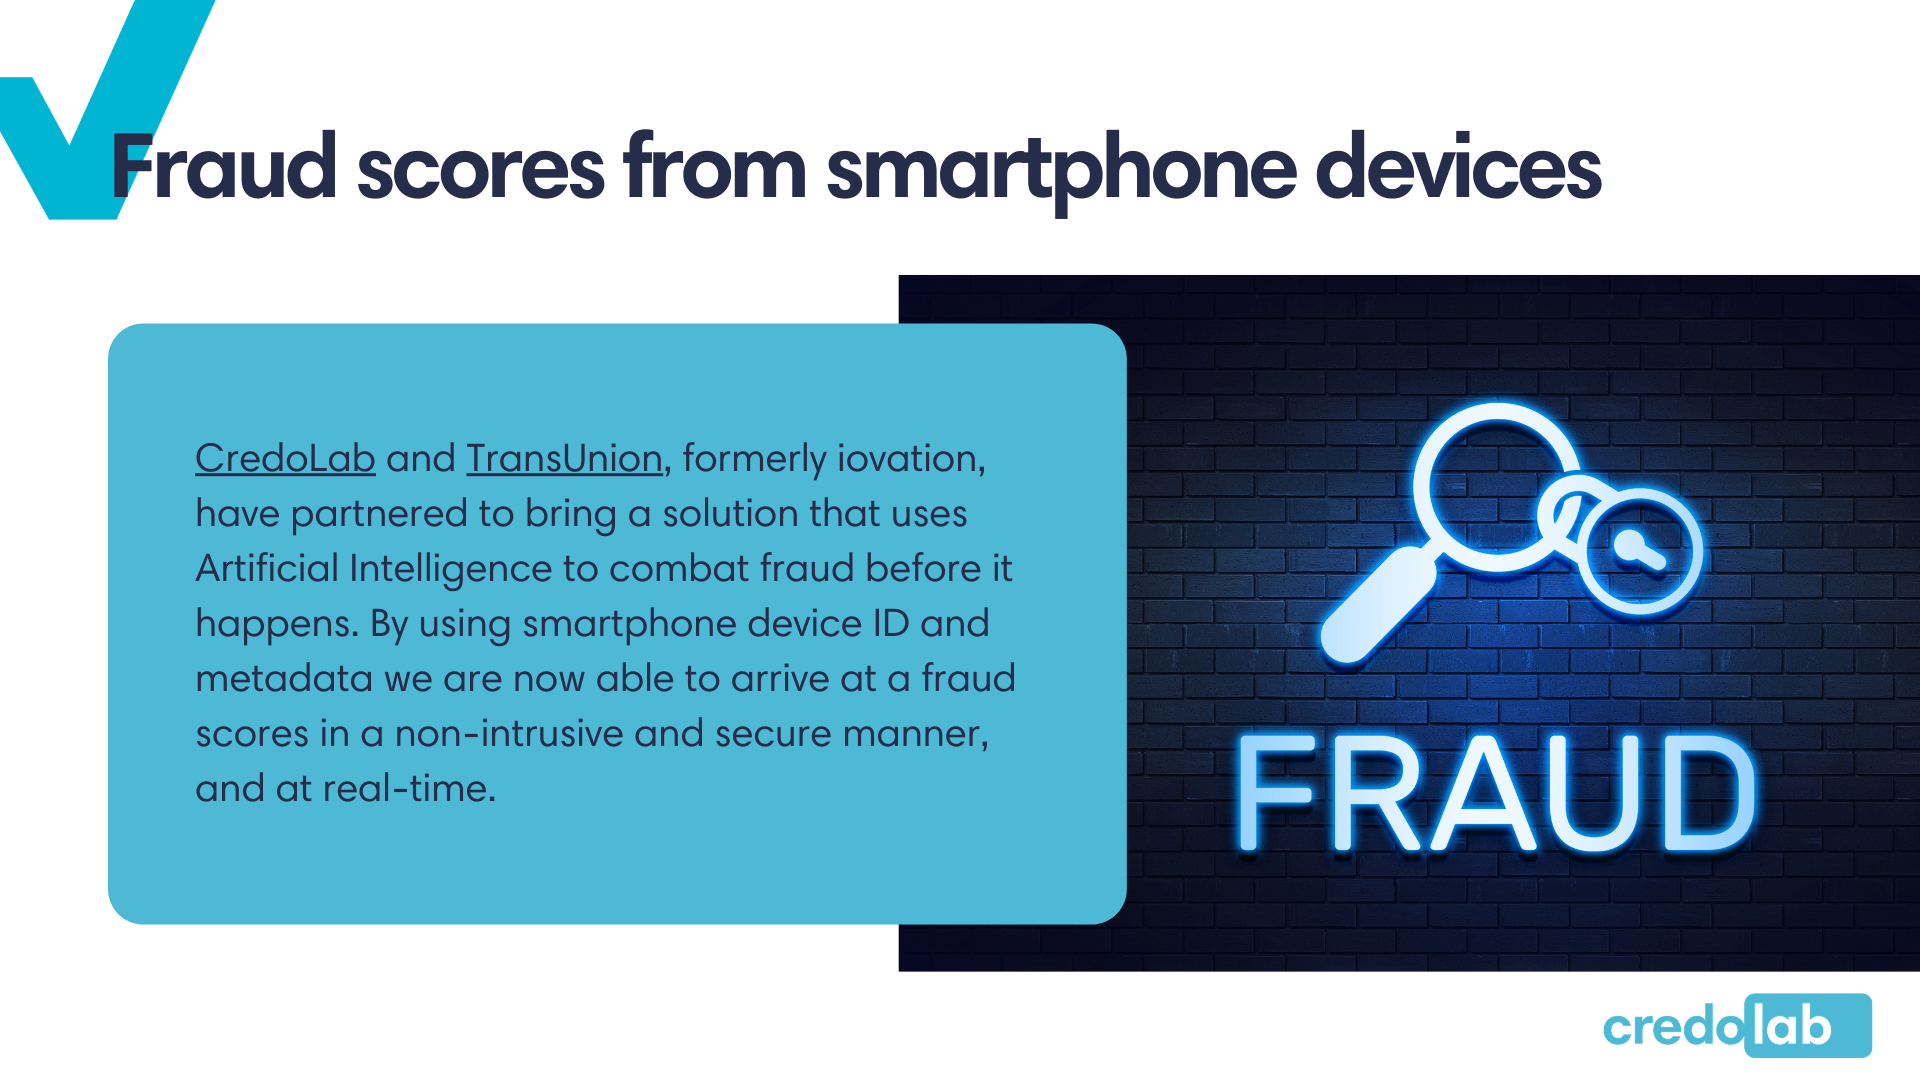 Credolab - Infographic: Fraud scores from smartphone devices